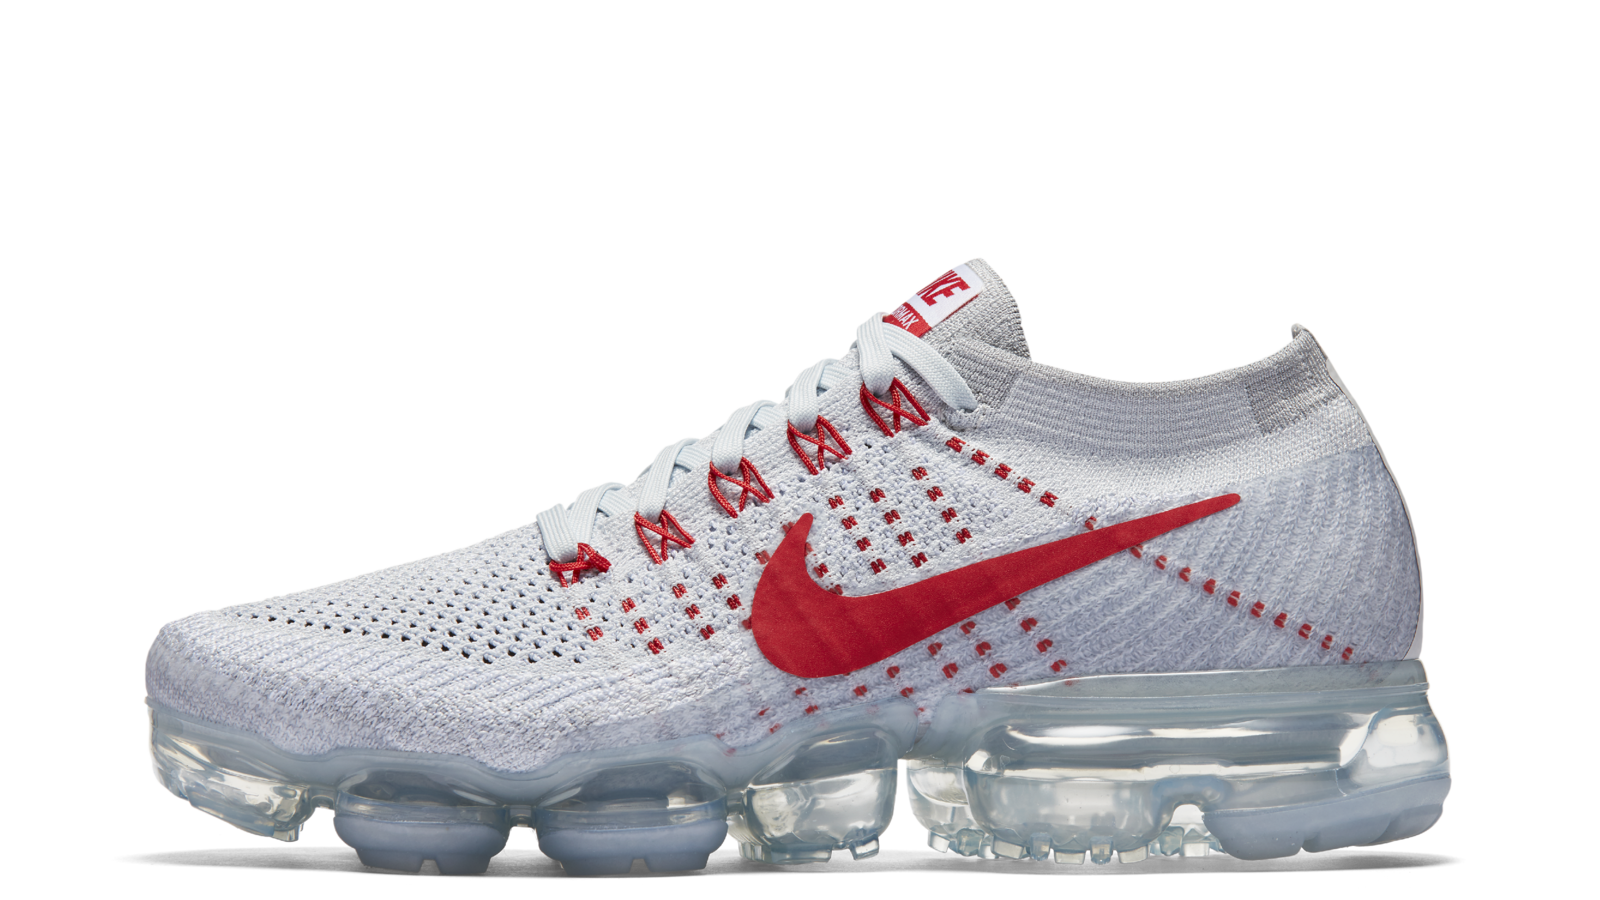 397a4ee1343 Nike Air VaporMax Reveals the Pinnacle of Air - Nike News